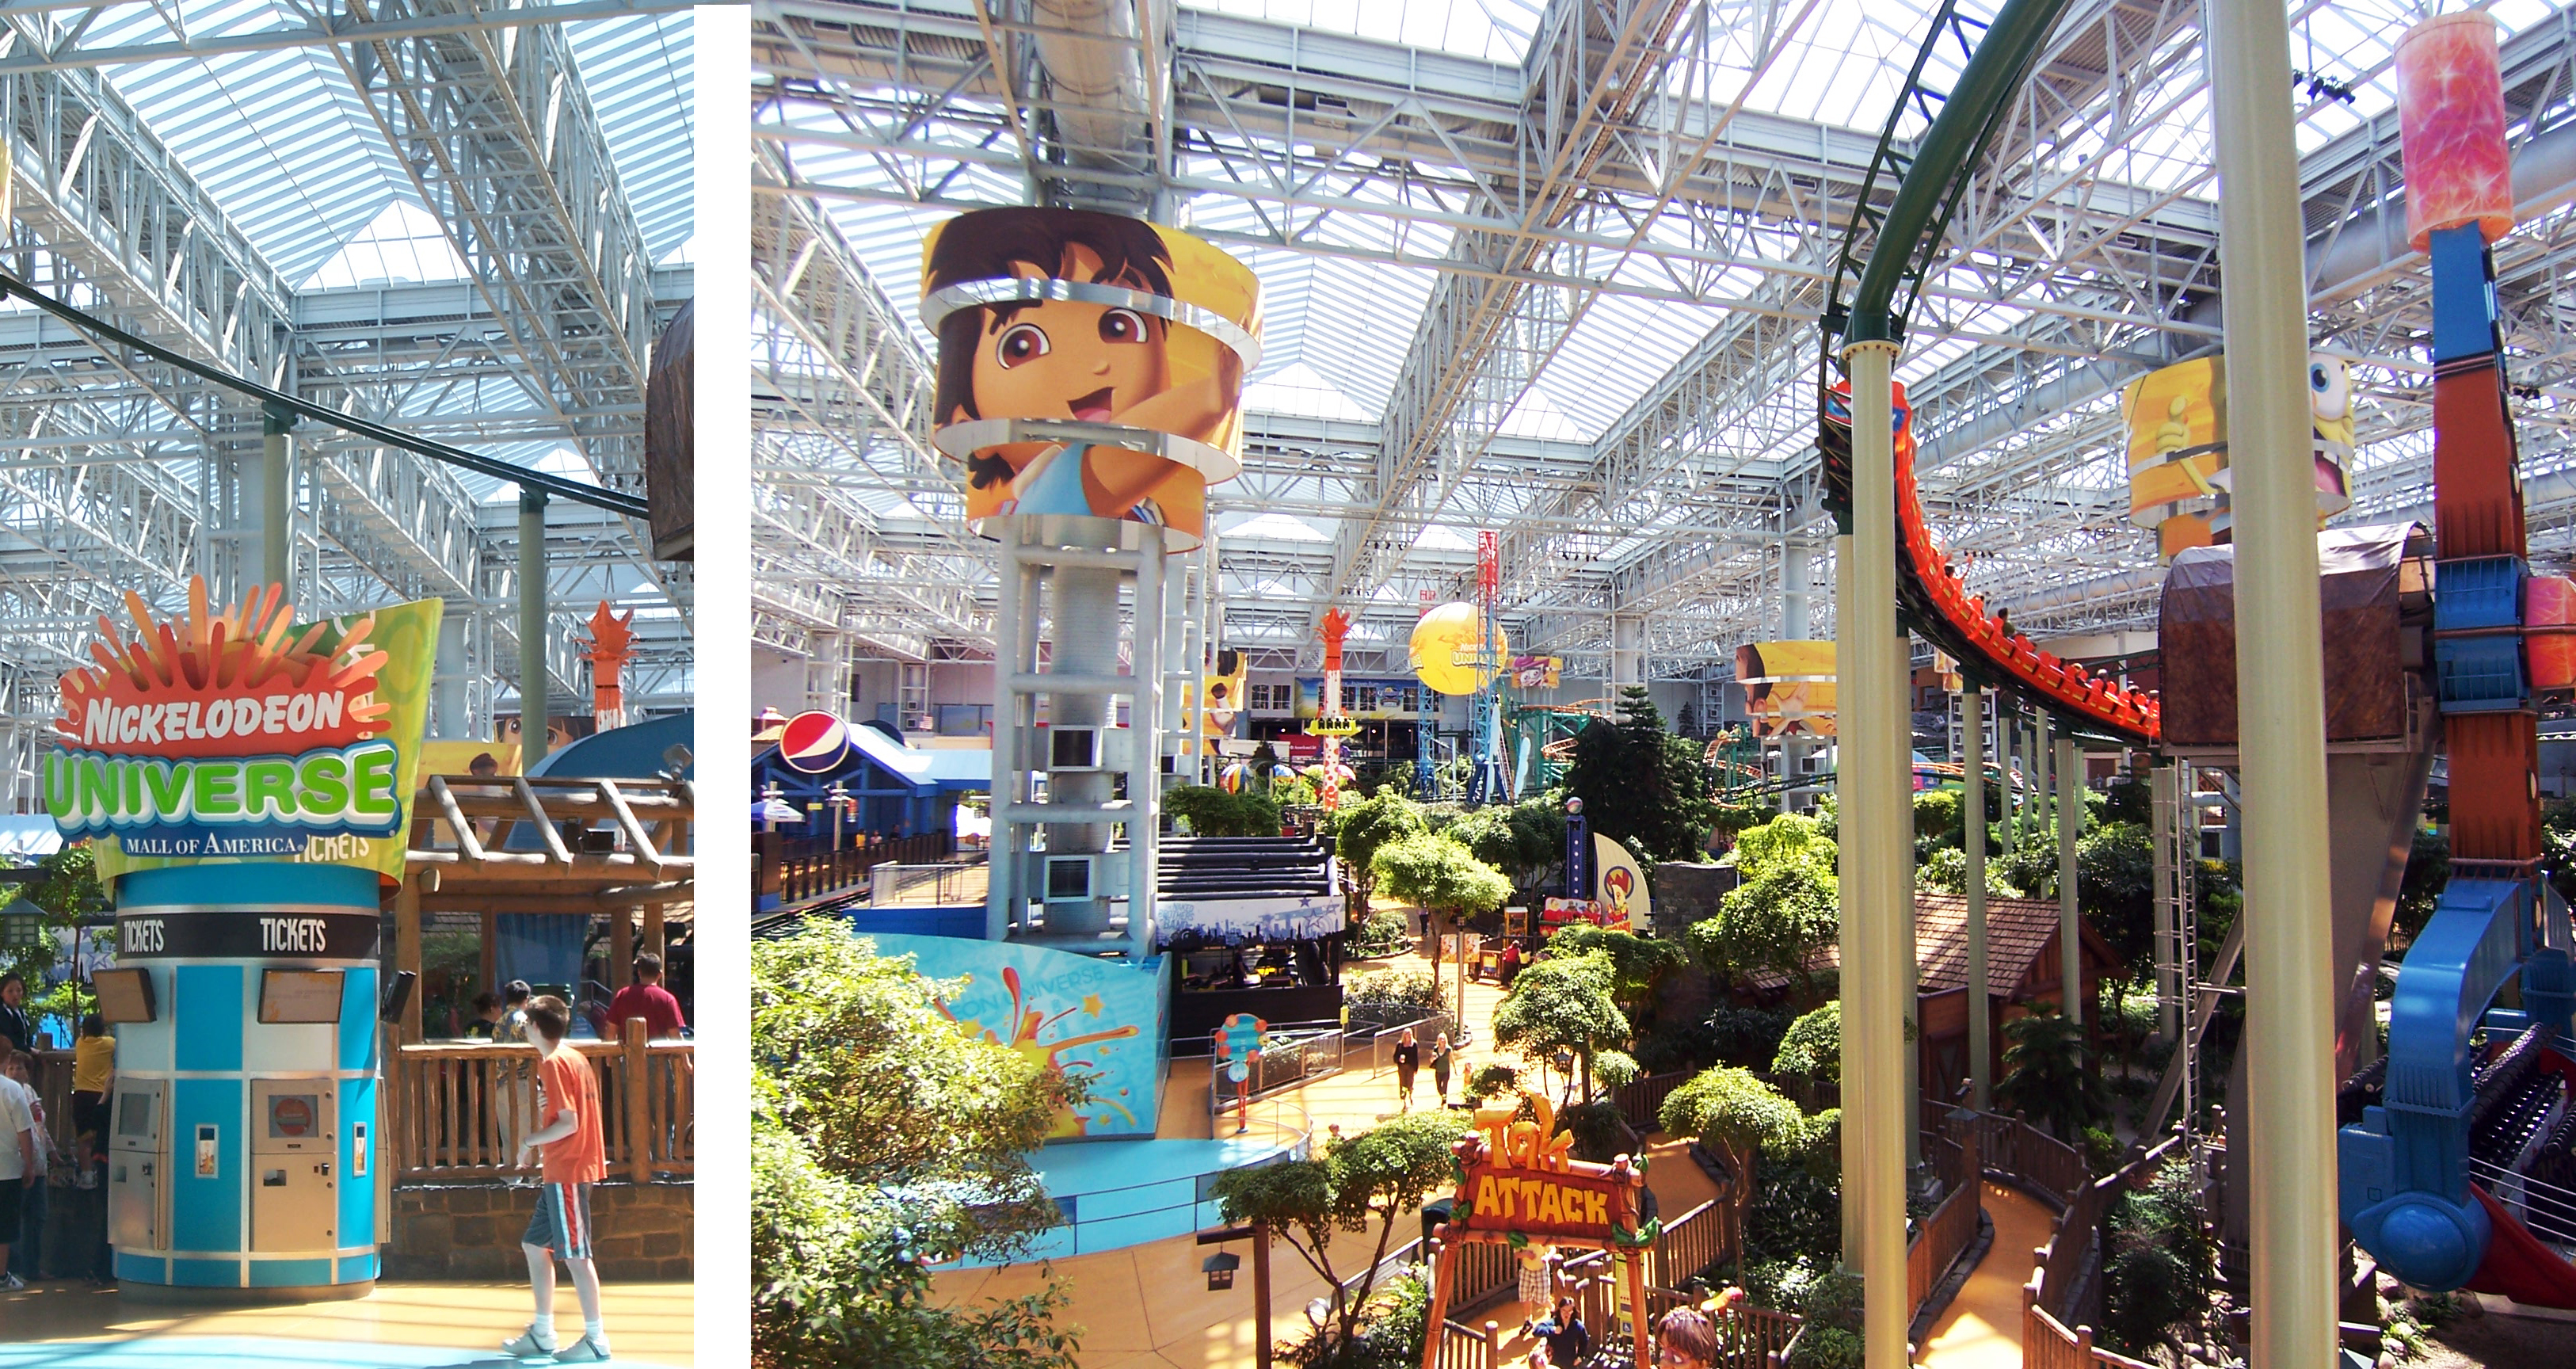 Nickelodeon Universe®, the nation's largest indoor theme park, is home to seven acres of unique attractions, entertainment and dining options. Meet the Nick characters, experience spine-tingling rides, visit unique retail shops and much more! Test.